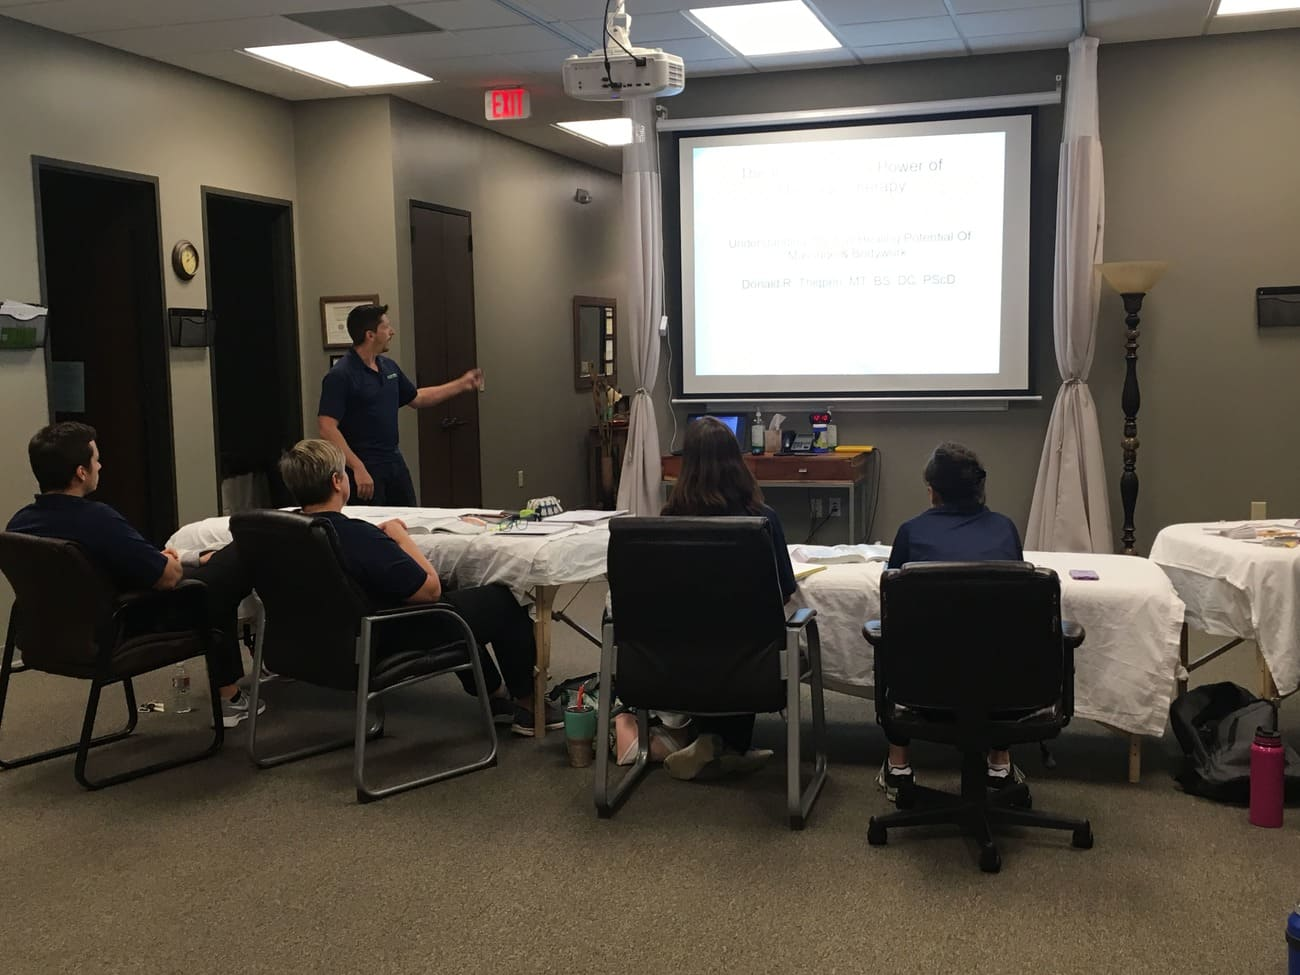 Lecture for personals Massage Therapist in The Woodlands